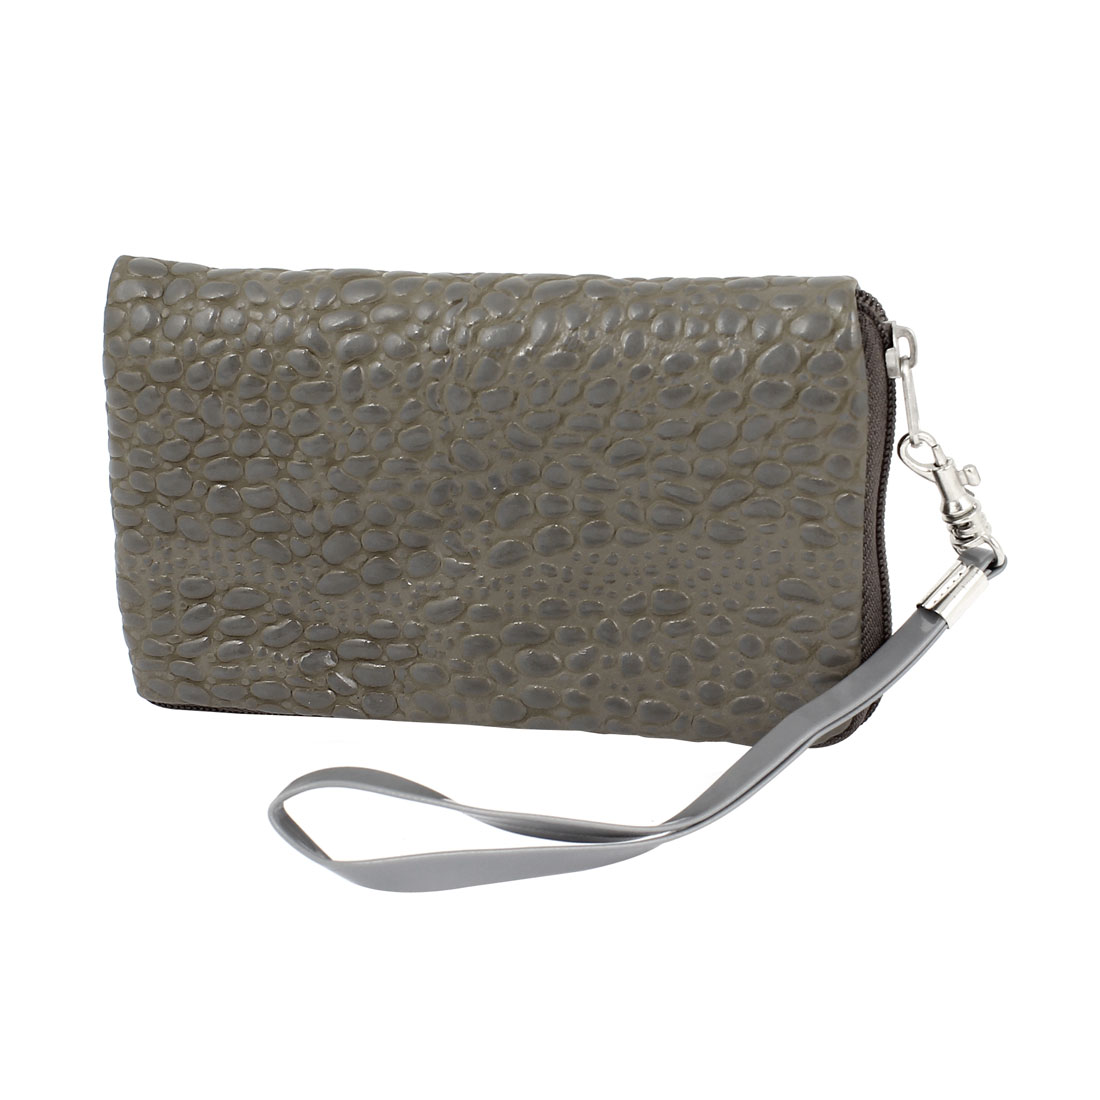 Unique Bargains Gray Faux Leather Alligator Pattern Purse Bag Holder for Mobile Phone Mp4